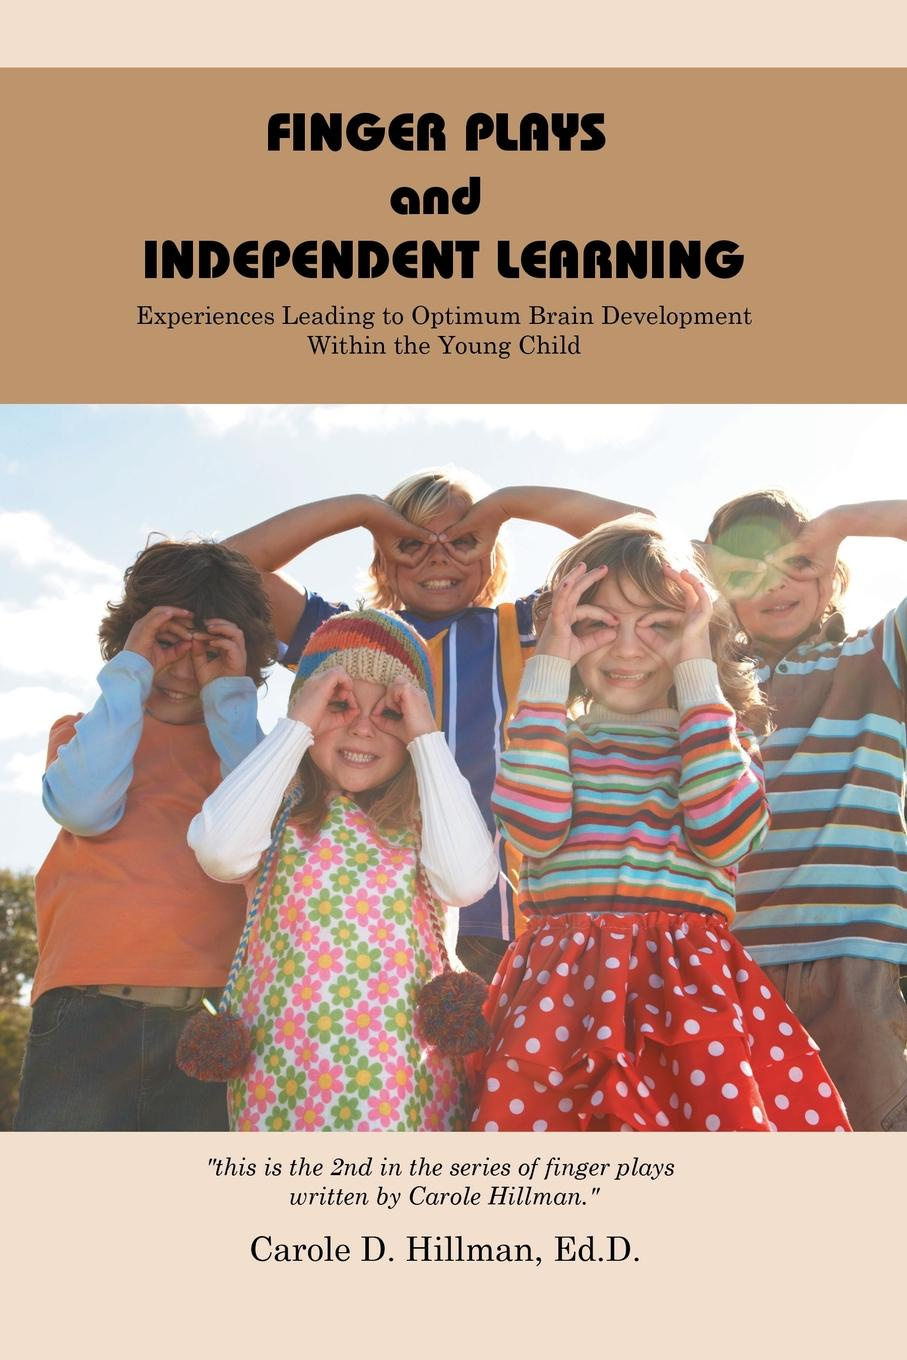 Carole D. Hillman EdD Finger Plays and Independent Learning. Experiences Leading to Optimum Brain Development Within the Young Child plays